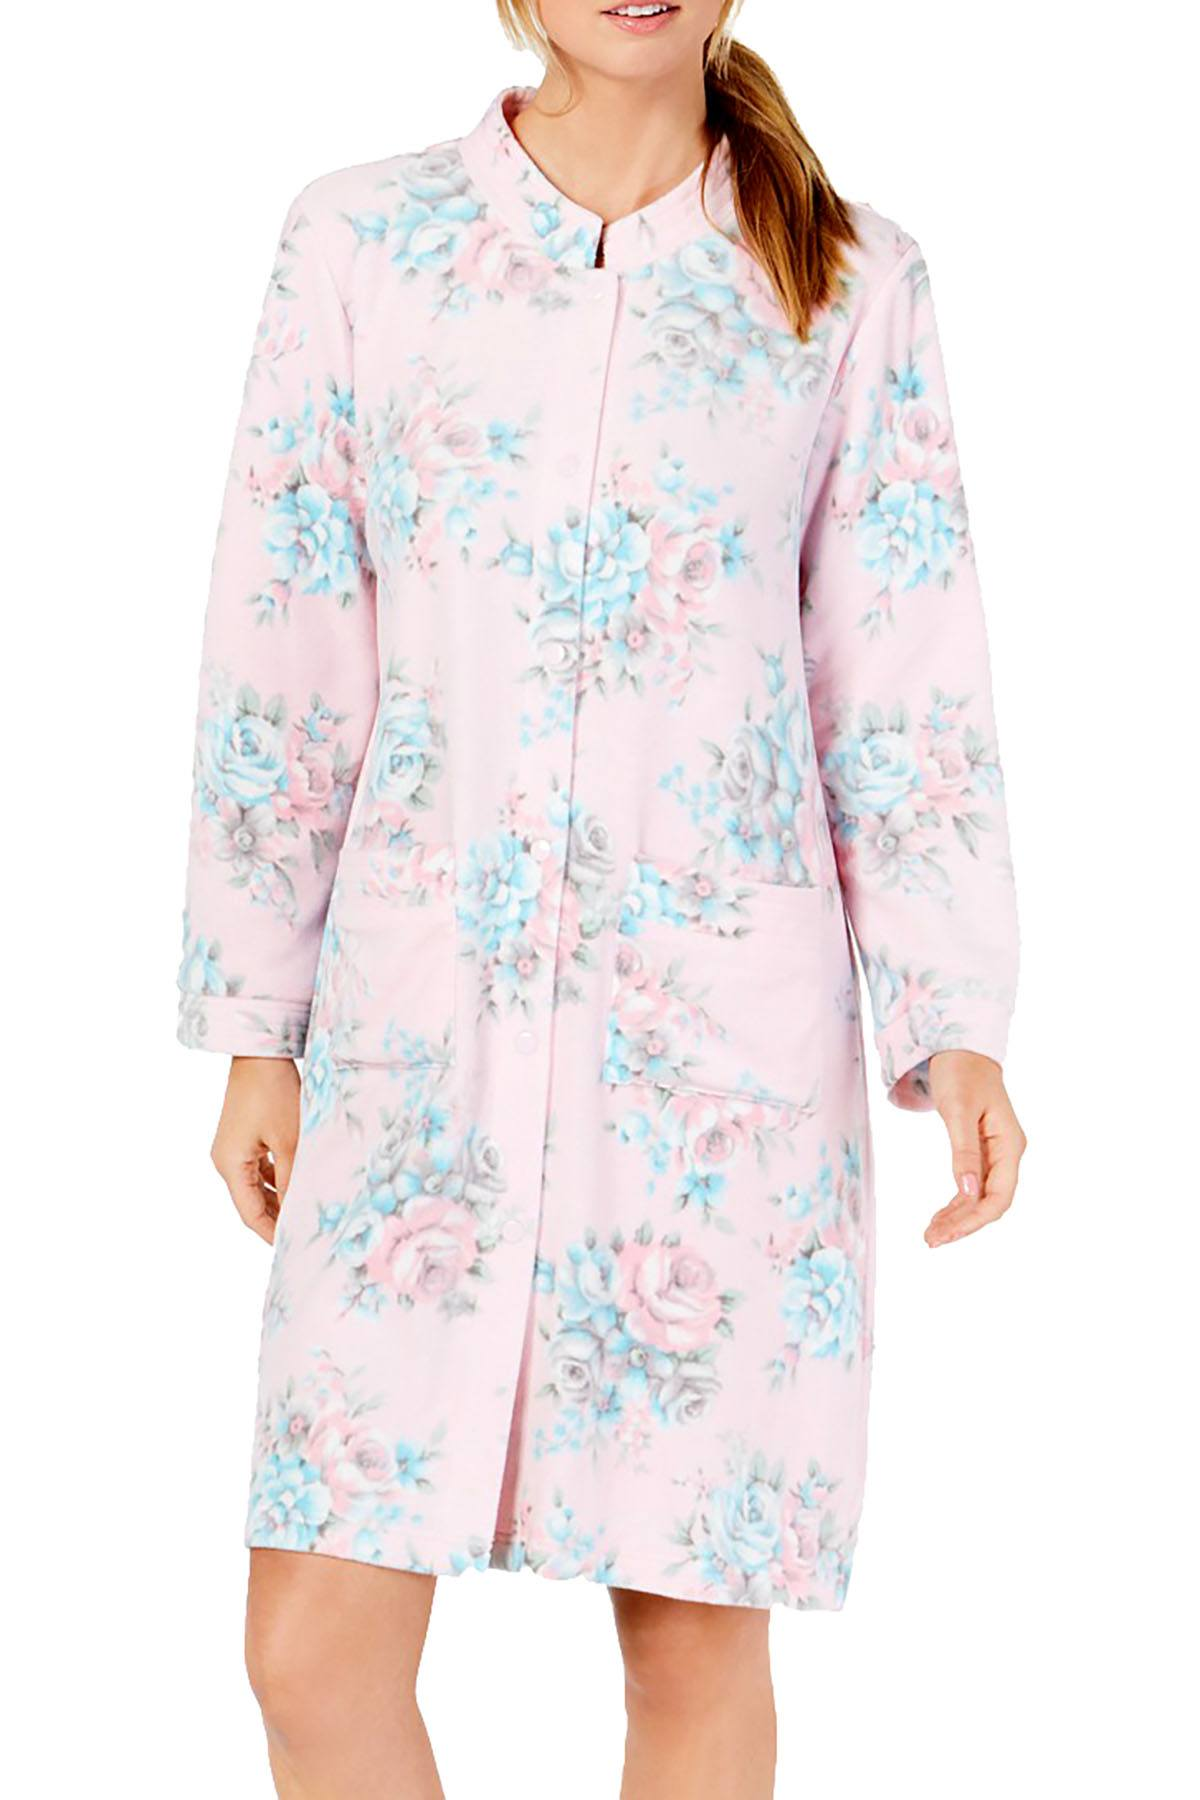 Miss Elaine Luxe Printed Brushed Fleece Short Snap Robe in Pink